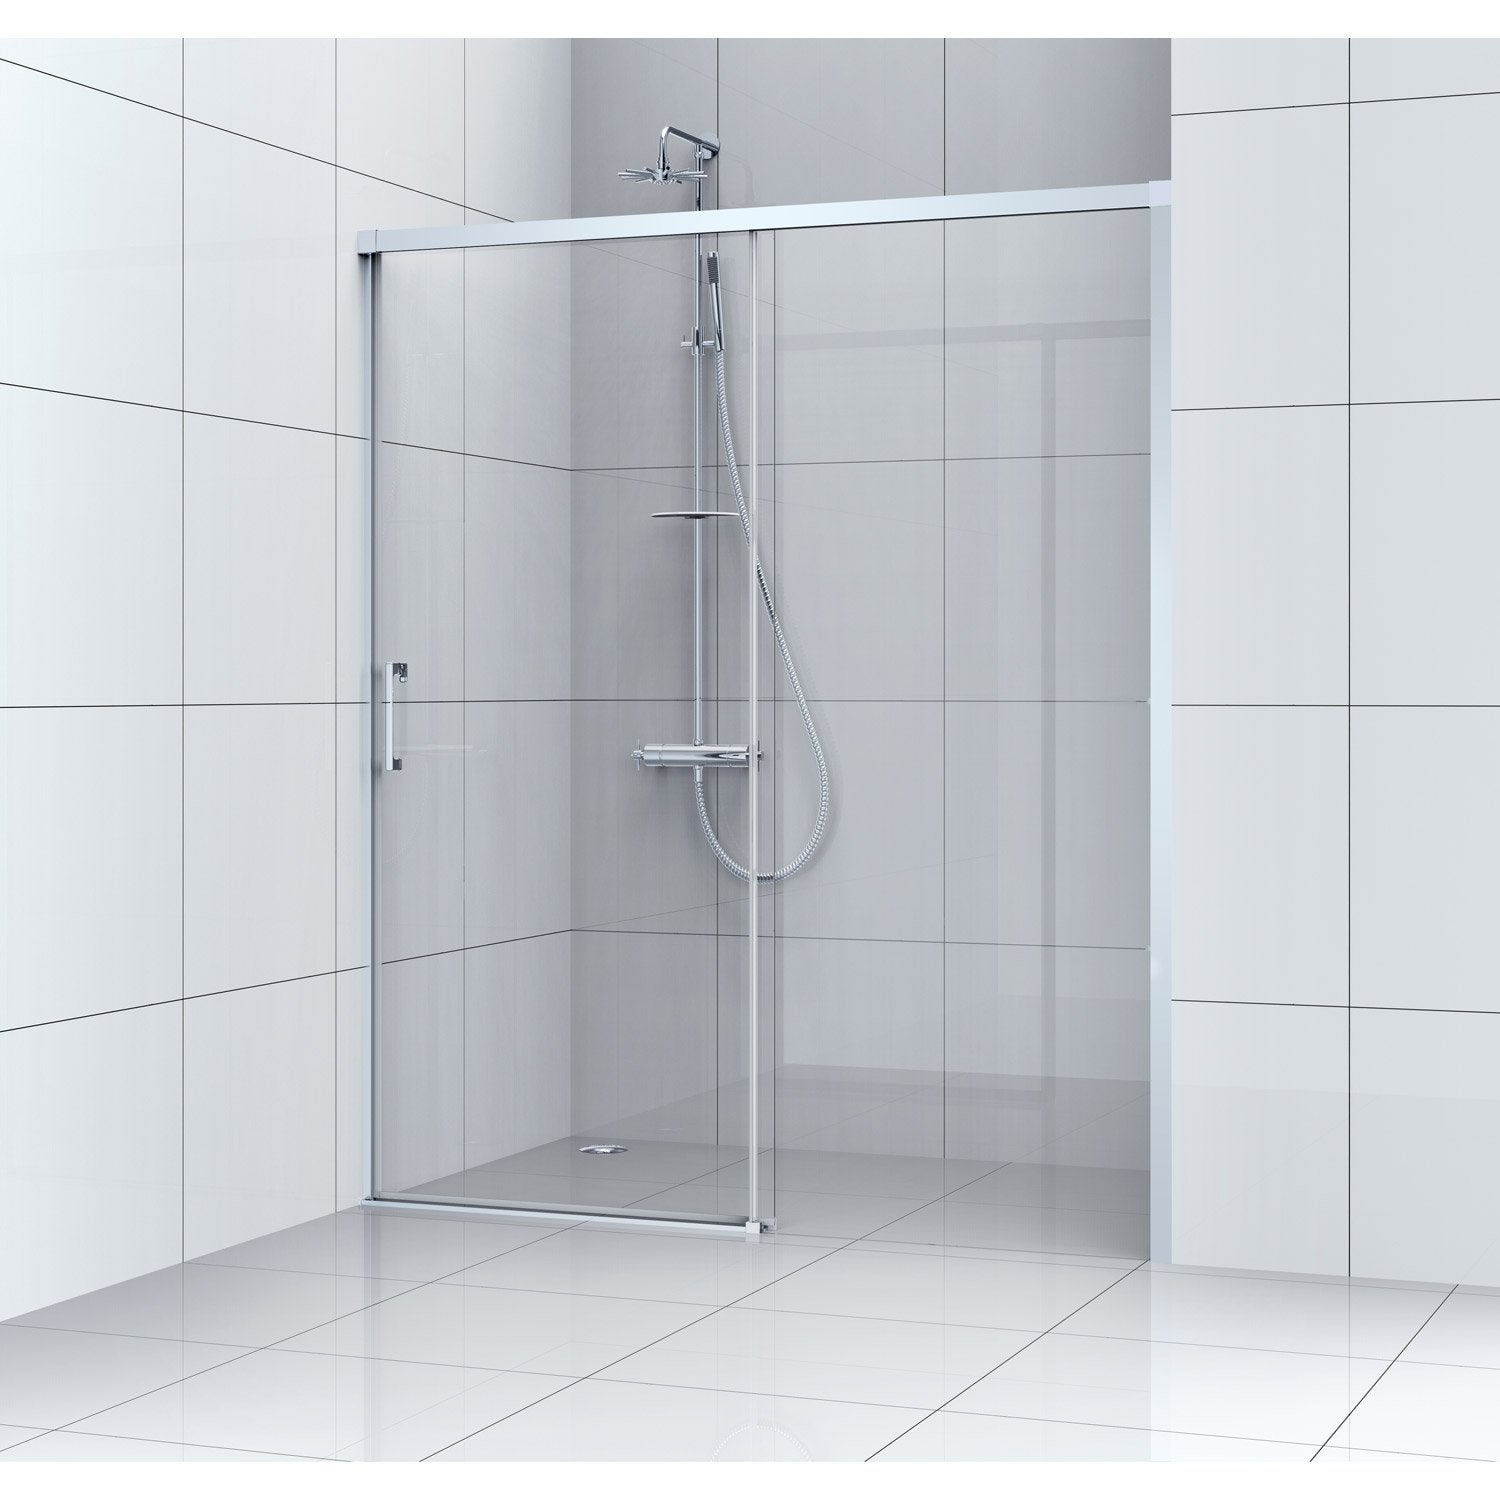 Porte de douche coulissante 100 cm transparent remix for Porte douche largeur 60 cm